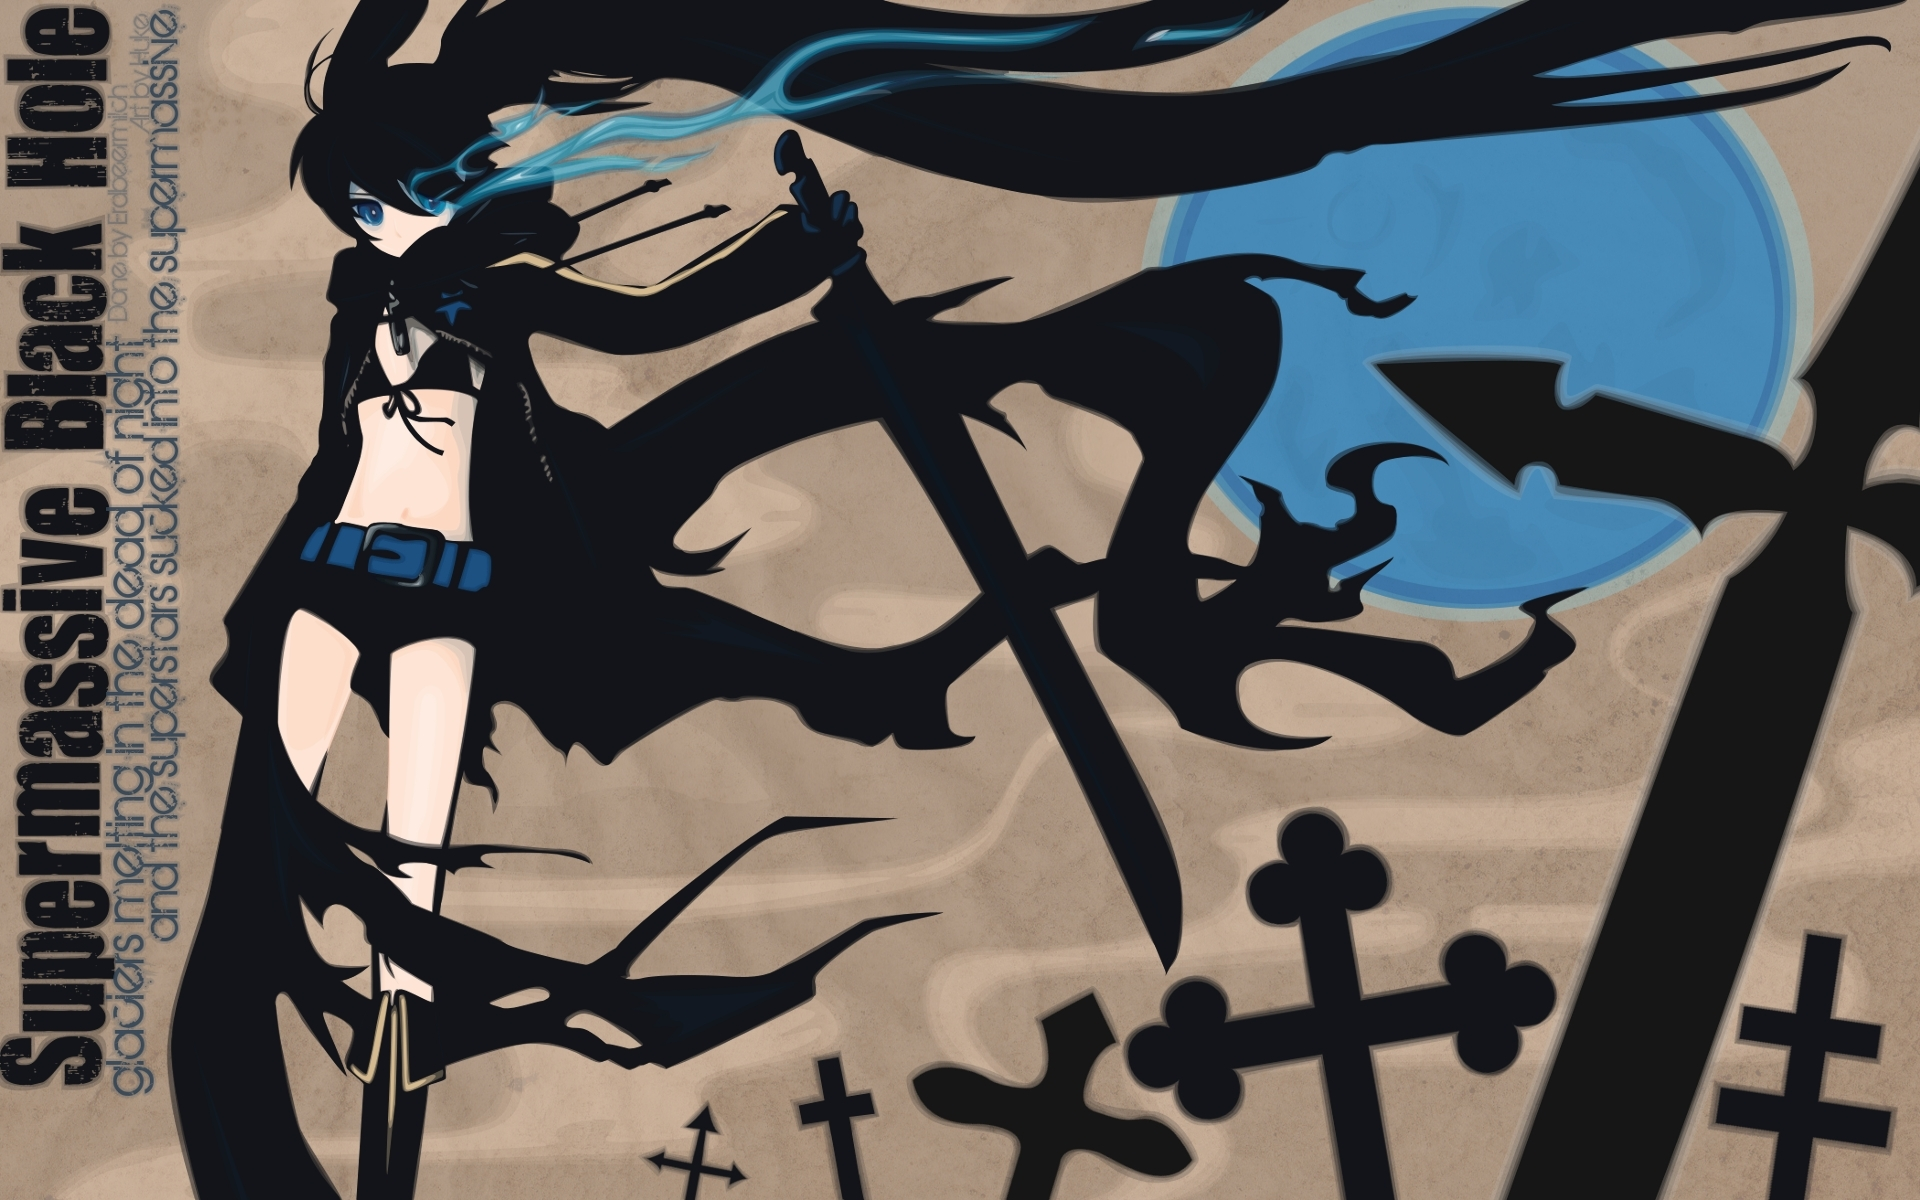 Black, Rock, Shooter, Anime, Аниме